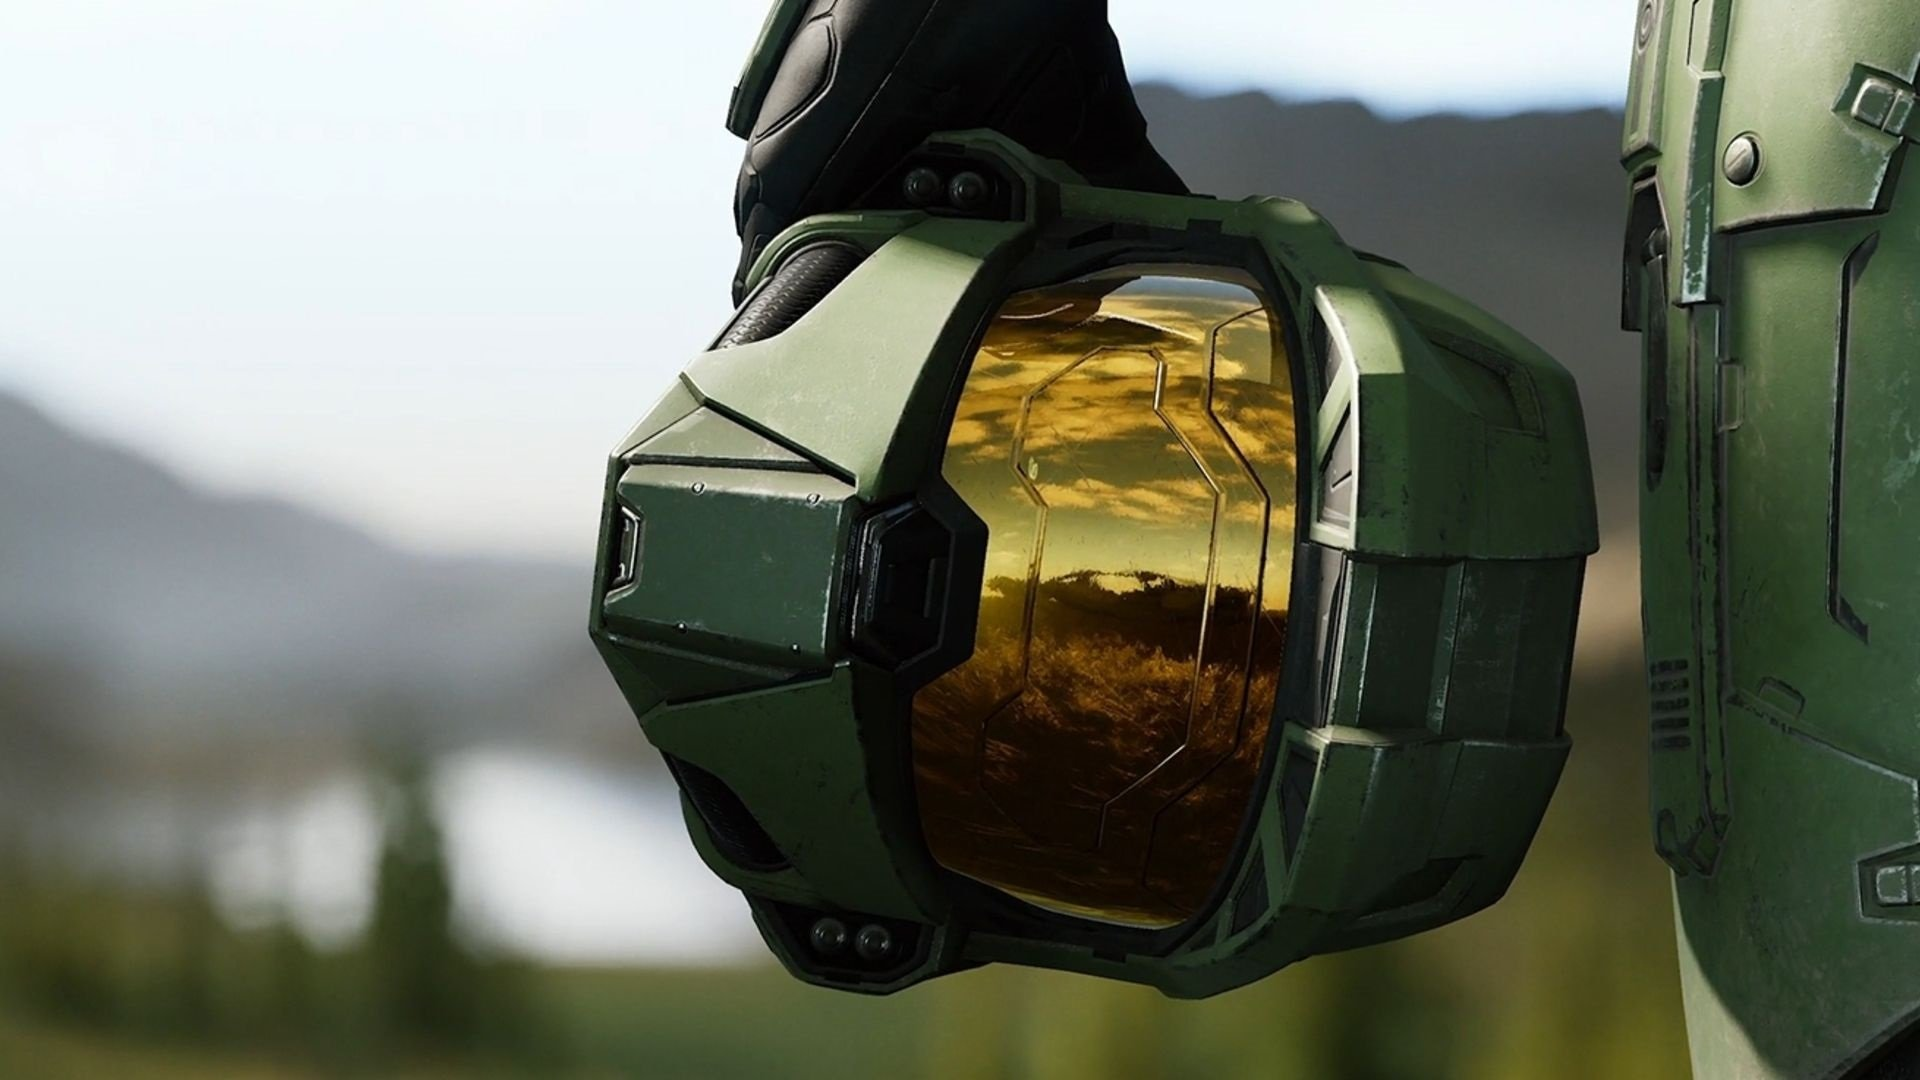 Xbox Scarlett is seemingly a family of two different consoles screenshot